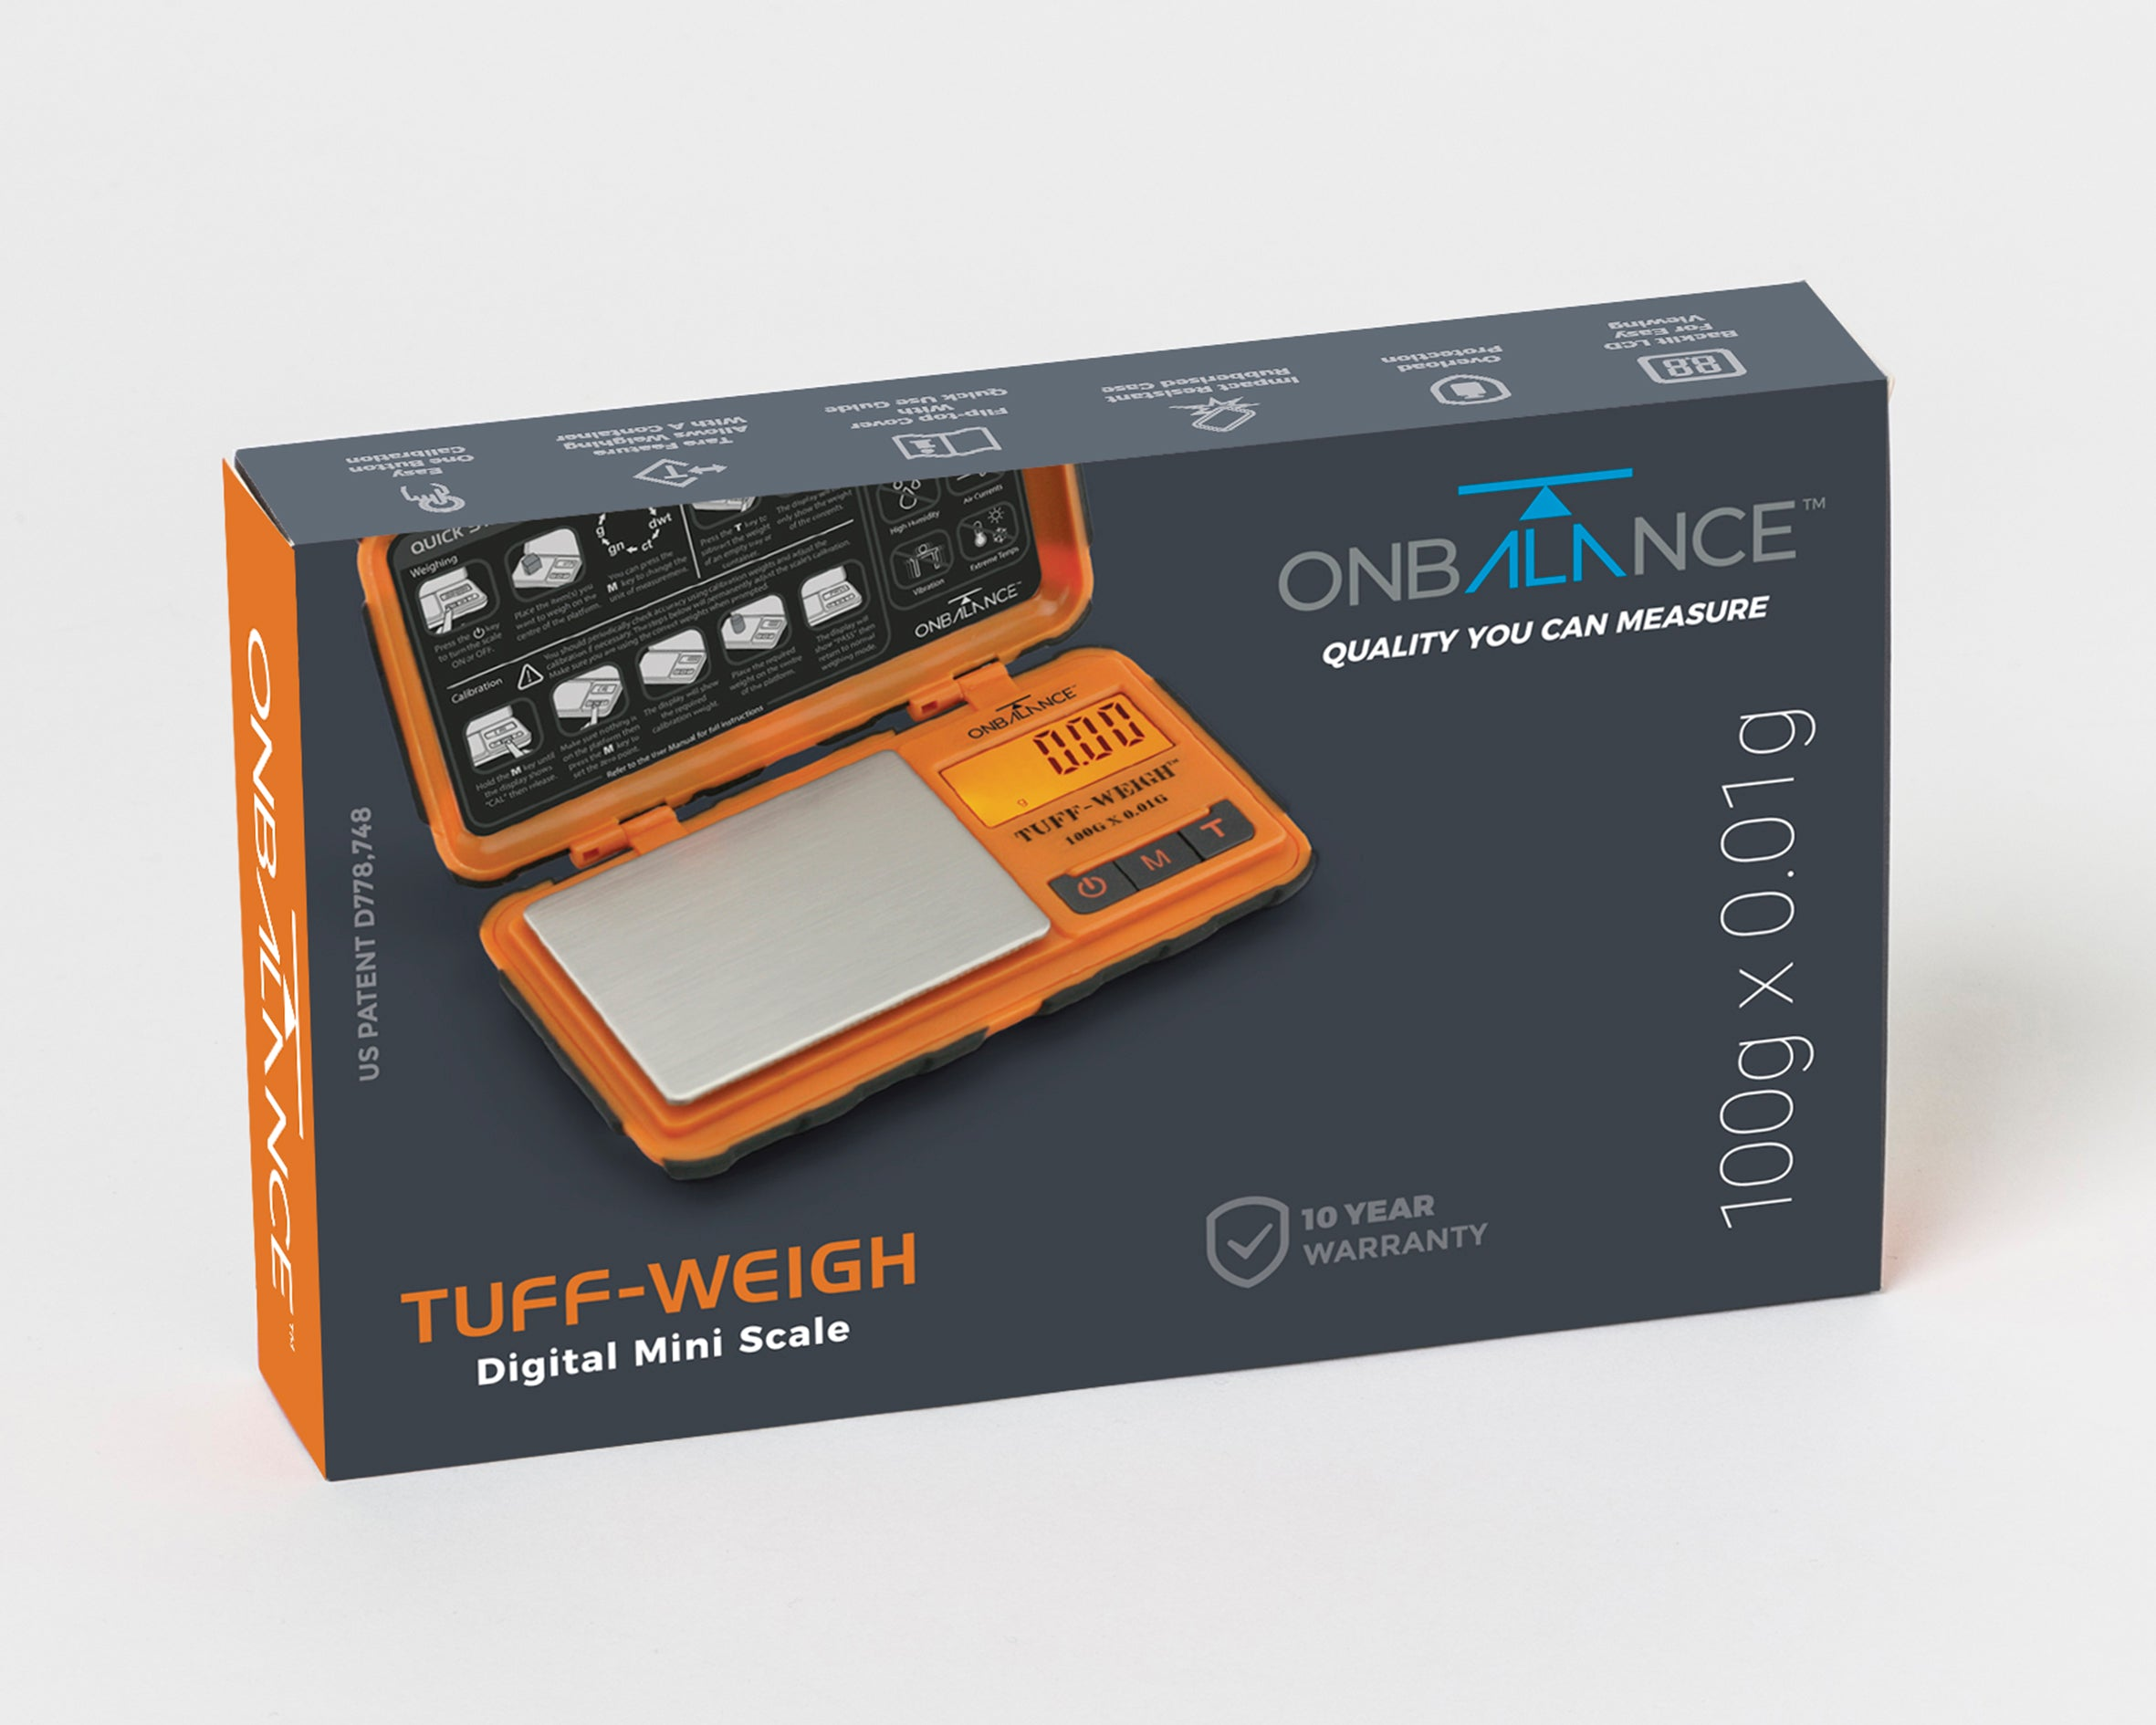 TUF-100 On Balance Tuff-Weigh Pocket Scale - Orange 100g x 0.01g